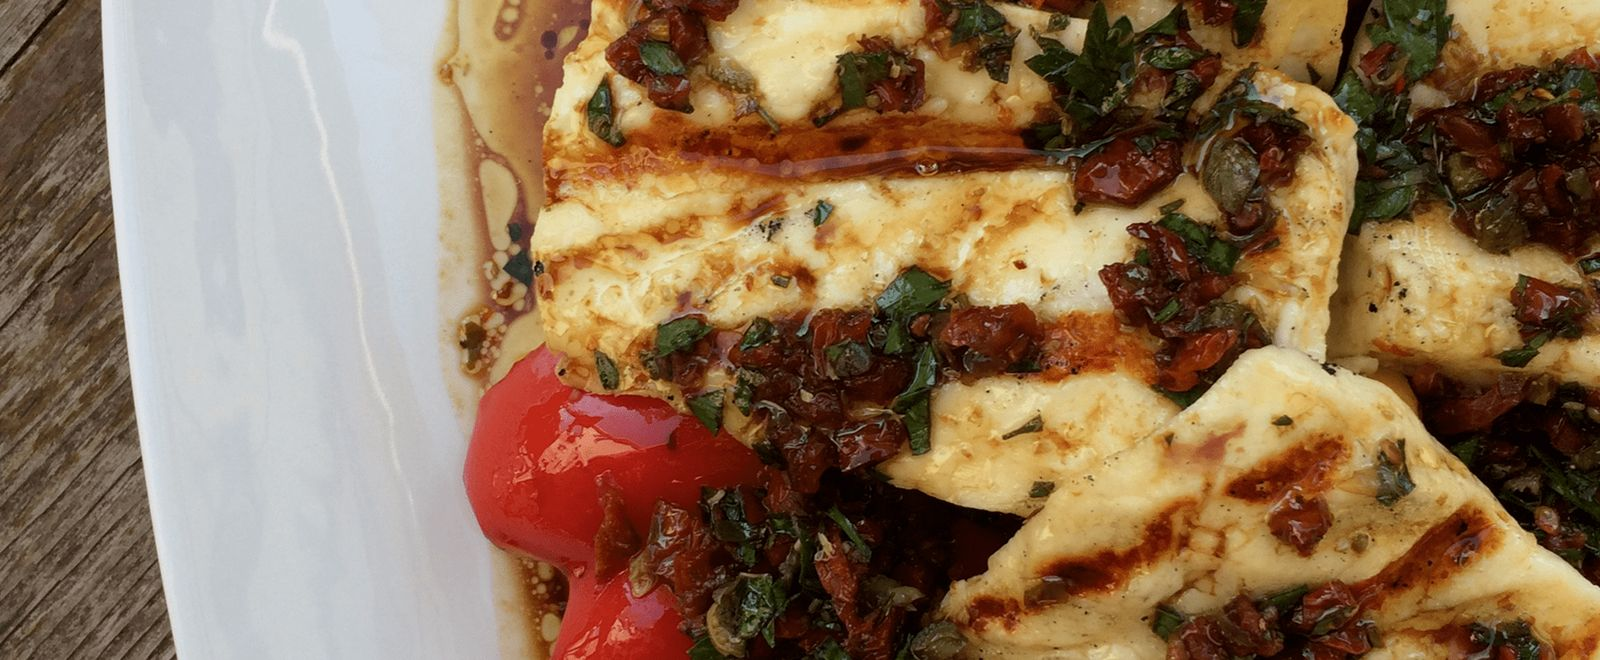 Grilled Halloumi and Peppers